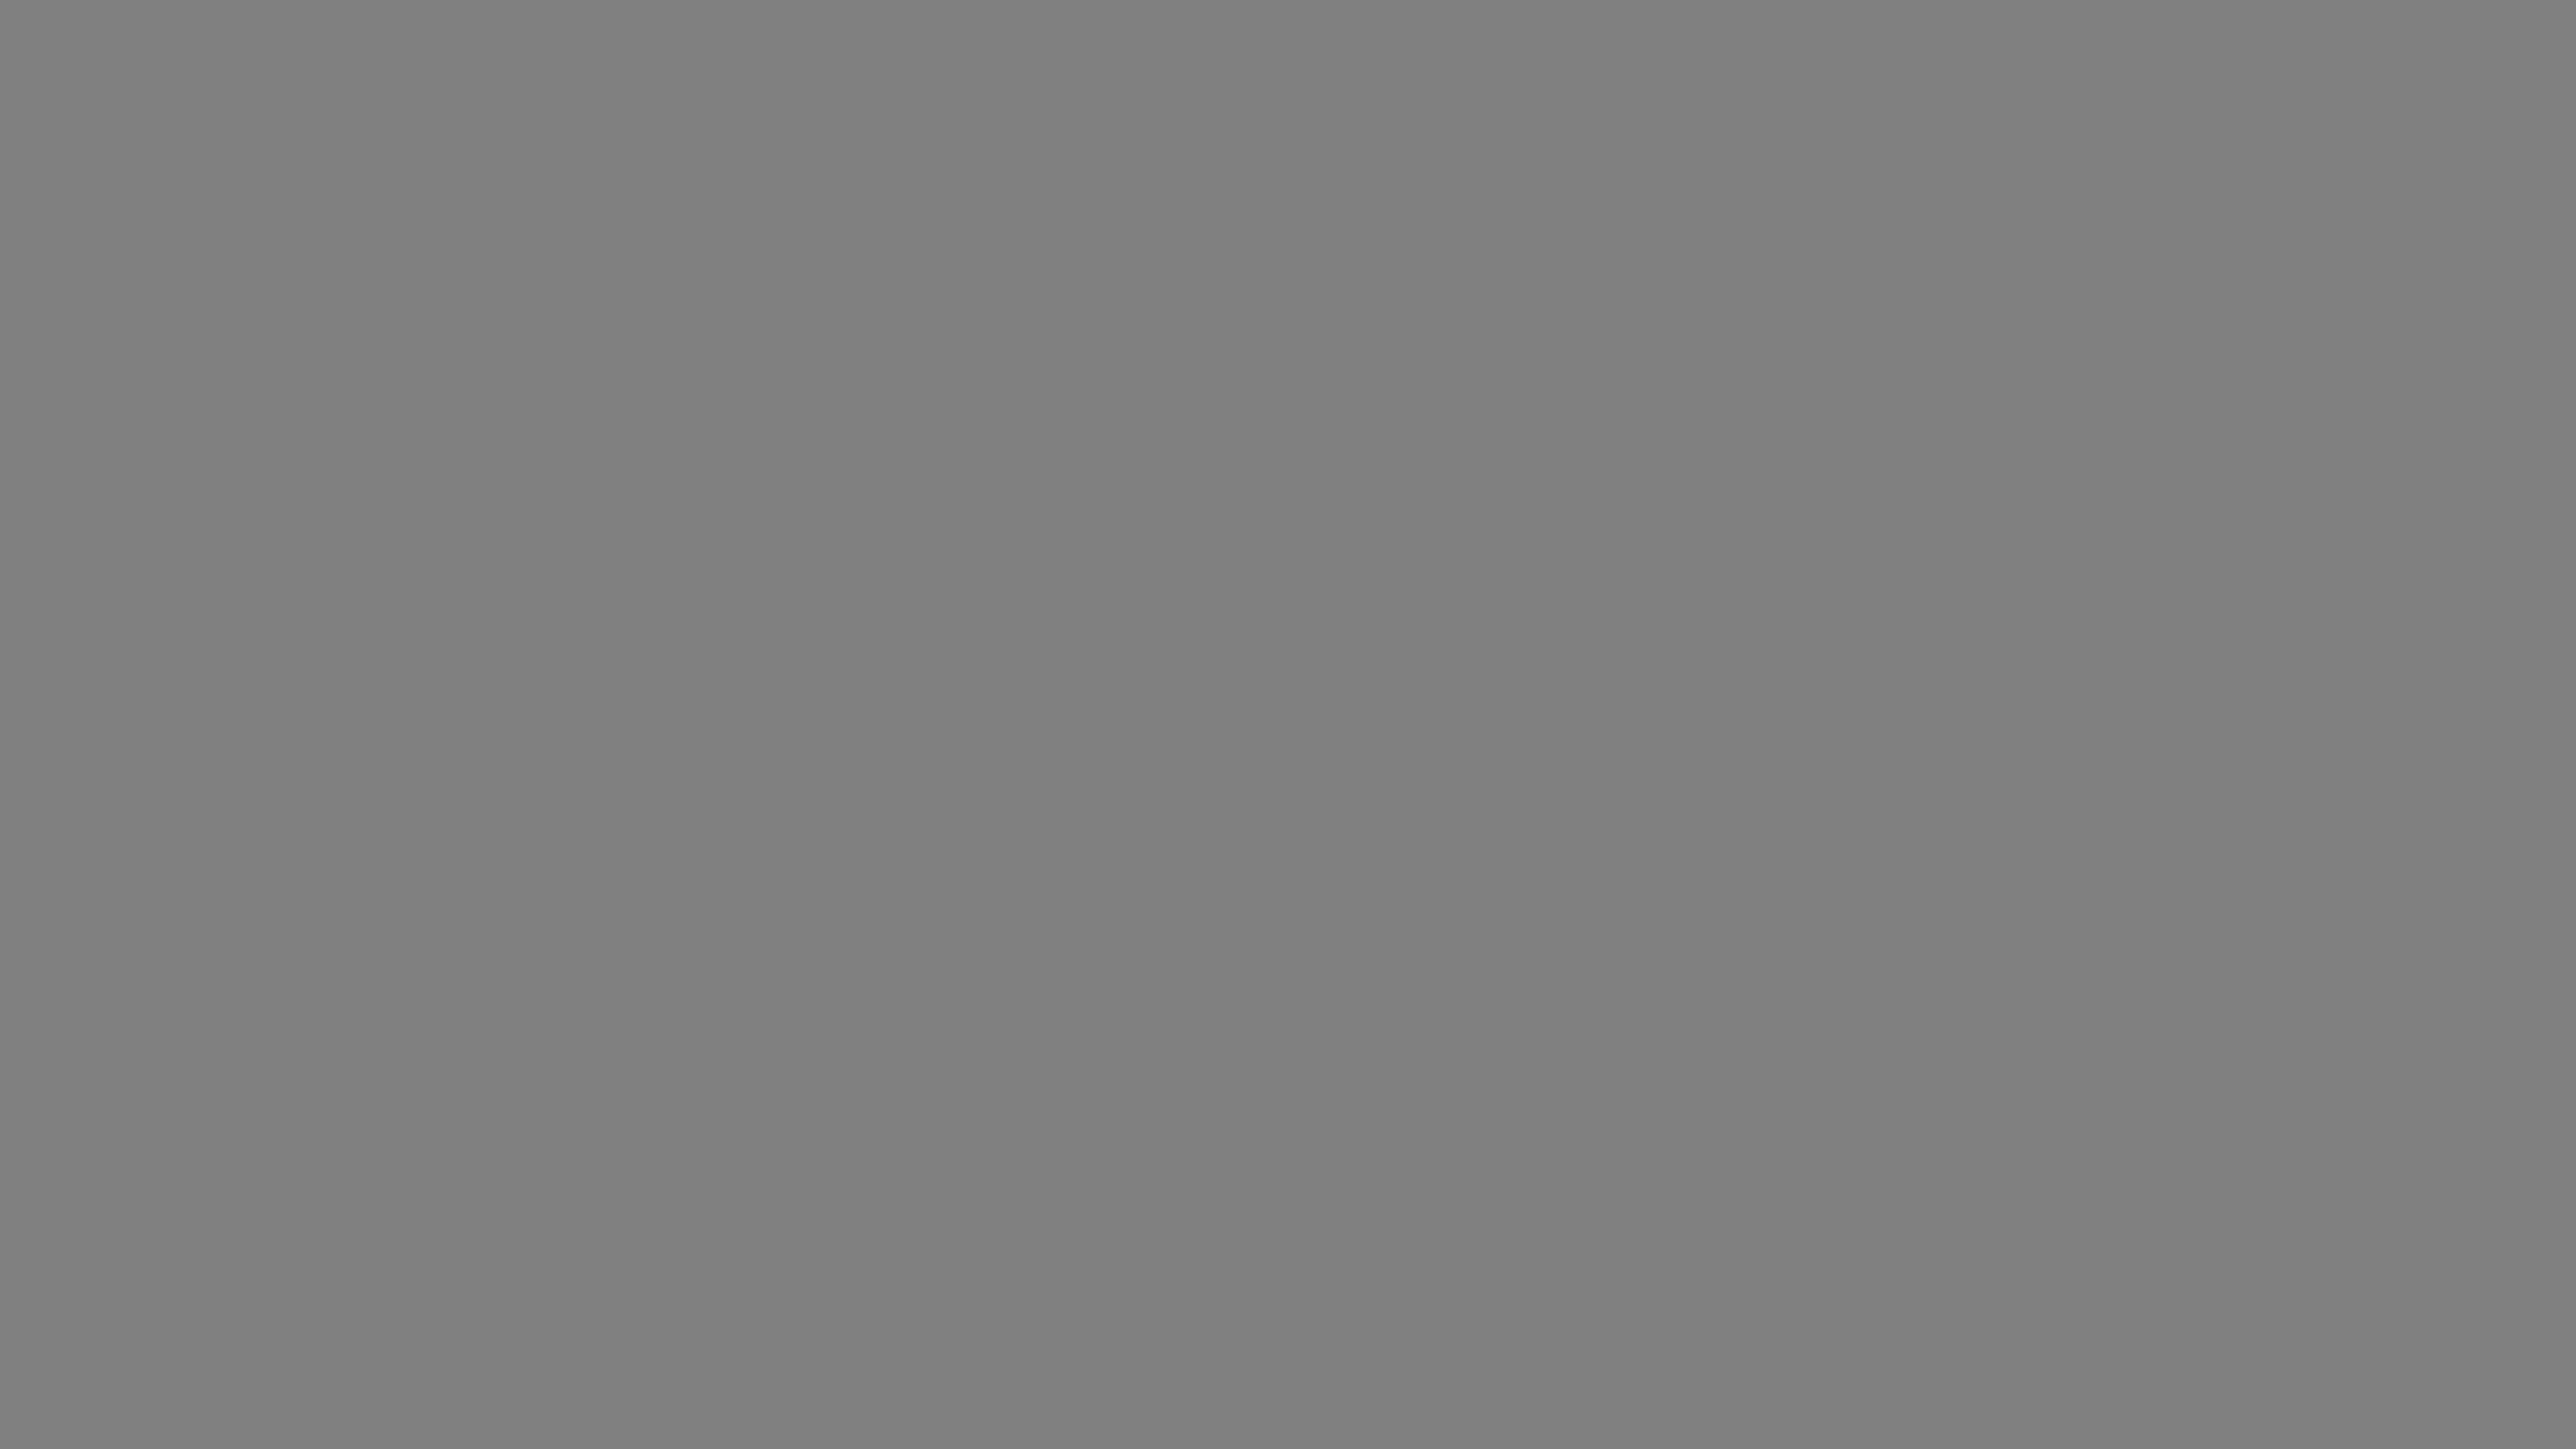 5120x2880 Gray Web Gray Solid Color Background